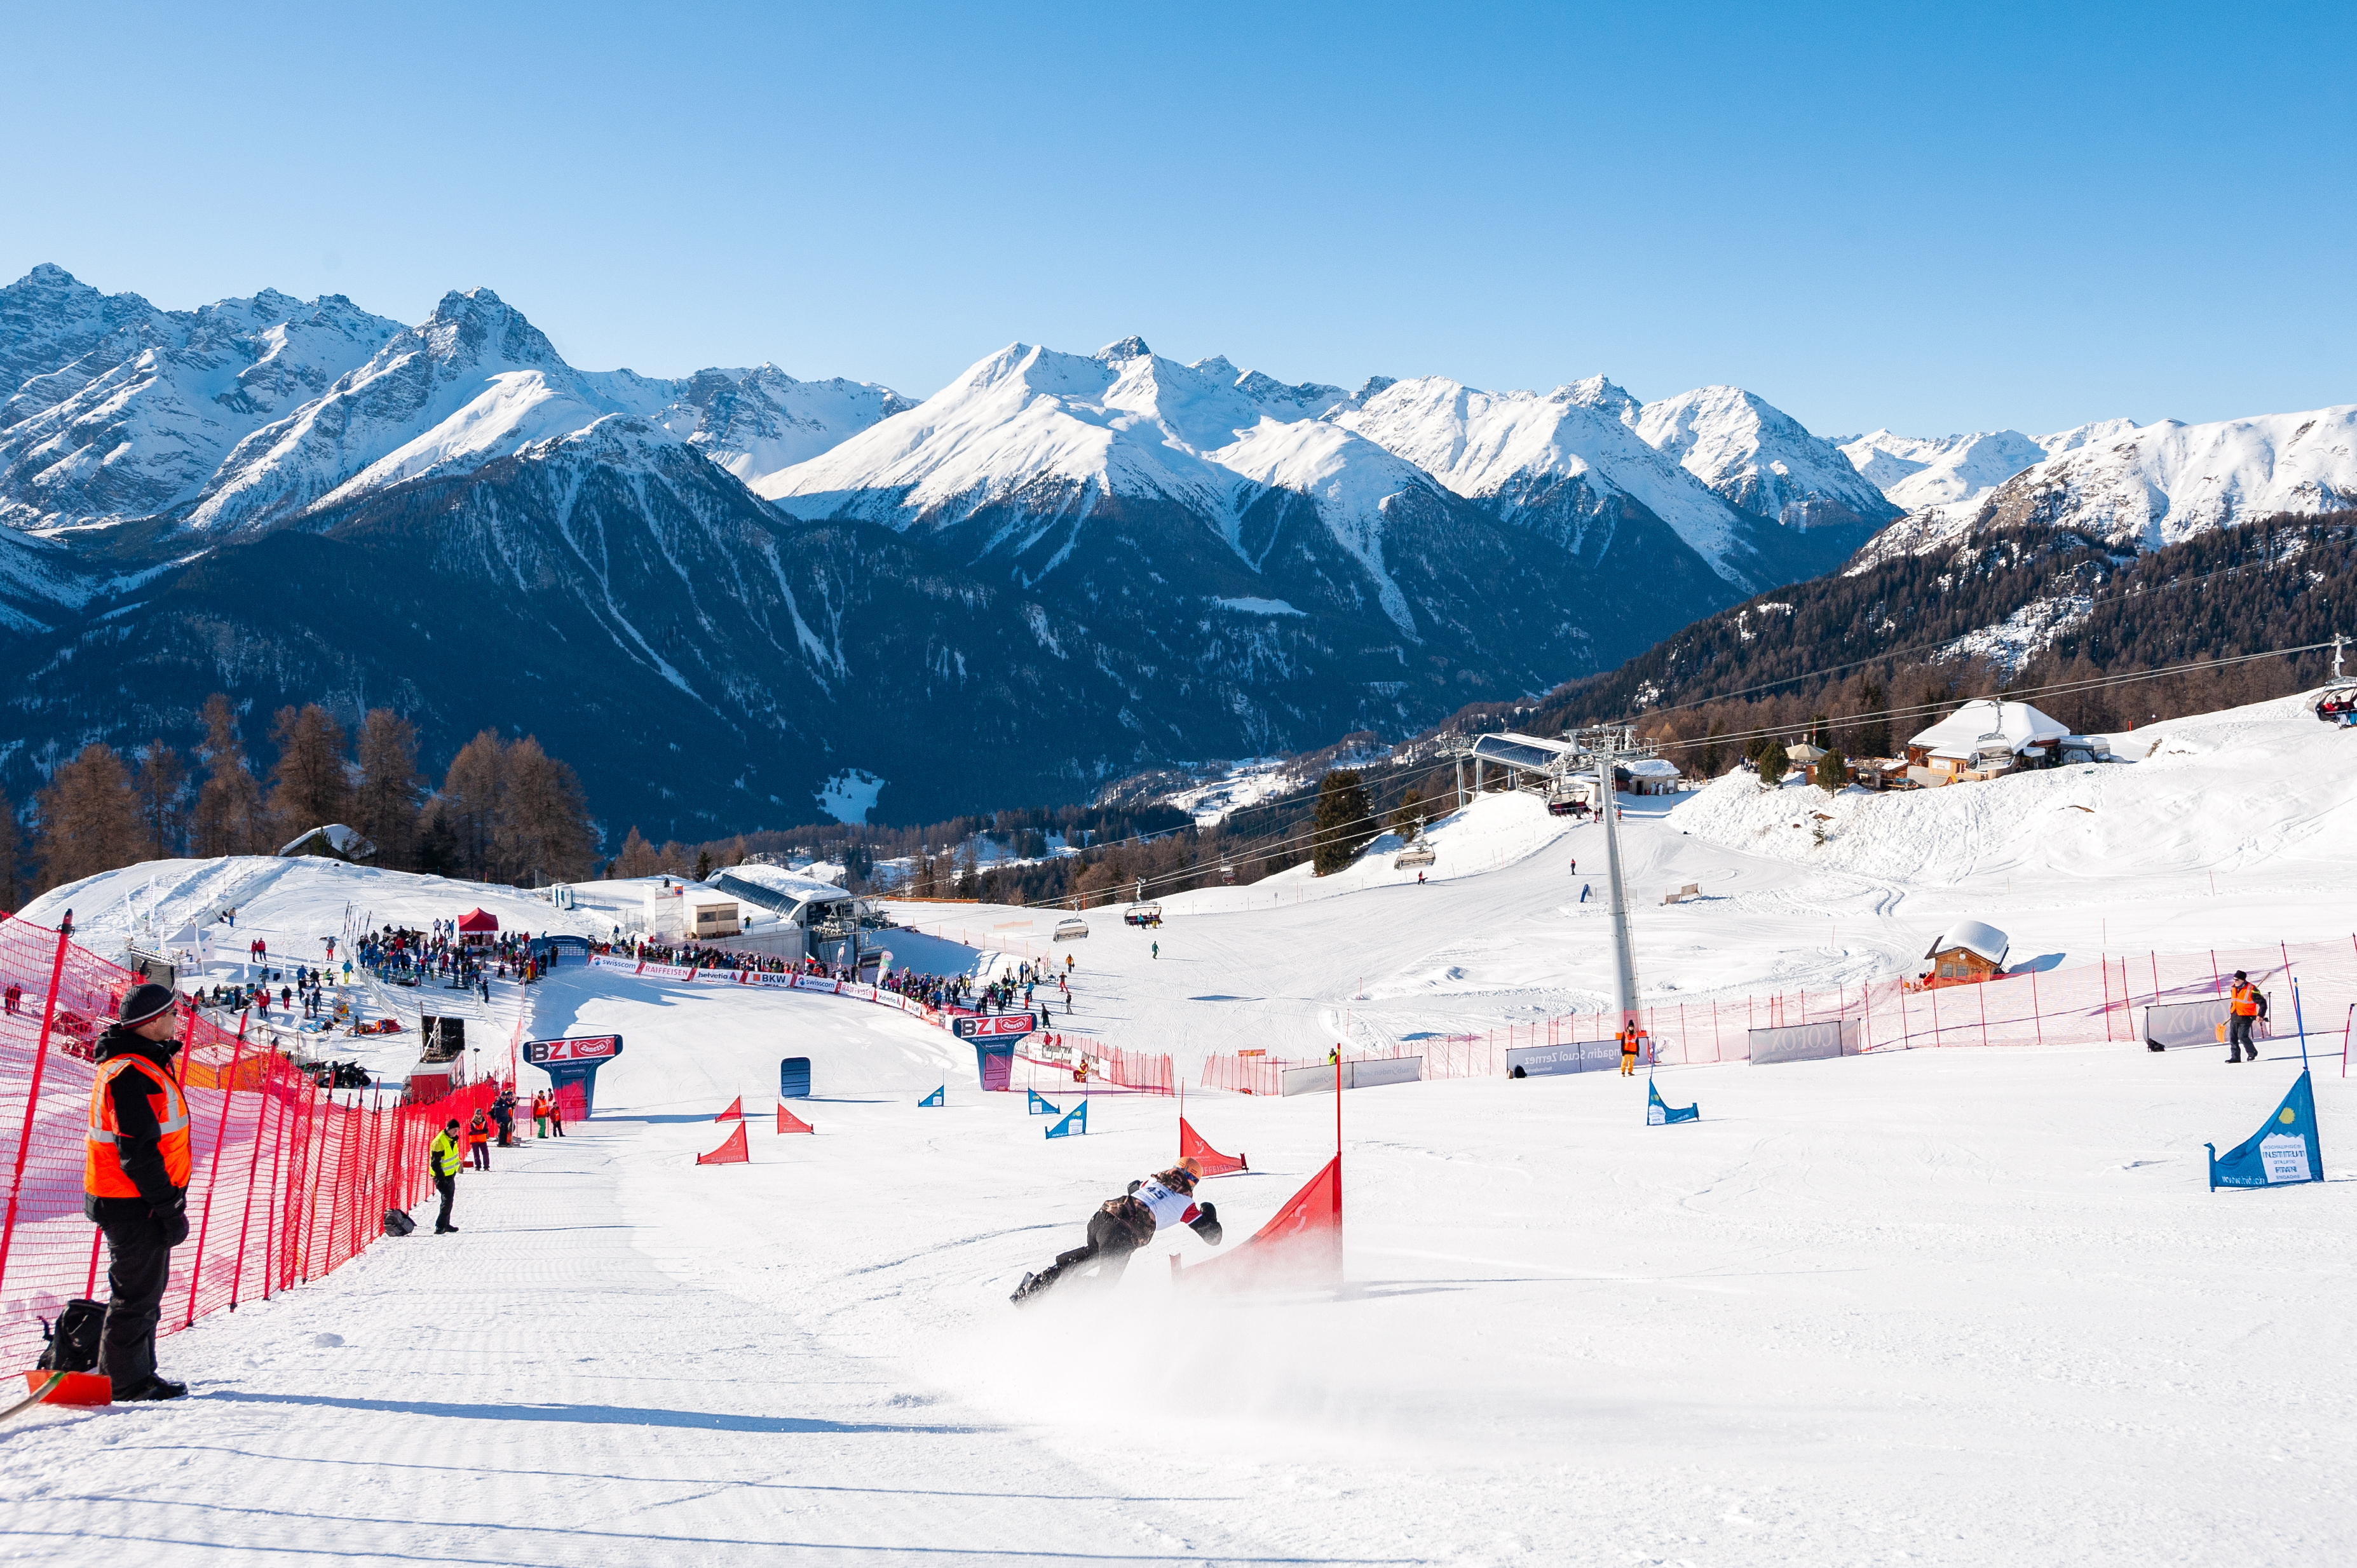 FIS Snowboard World Cup - Scuol SUI - PGS - Overview © Miha Matavz/FIS